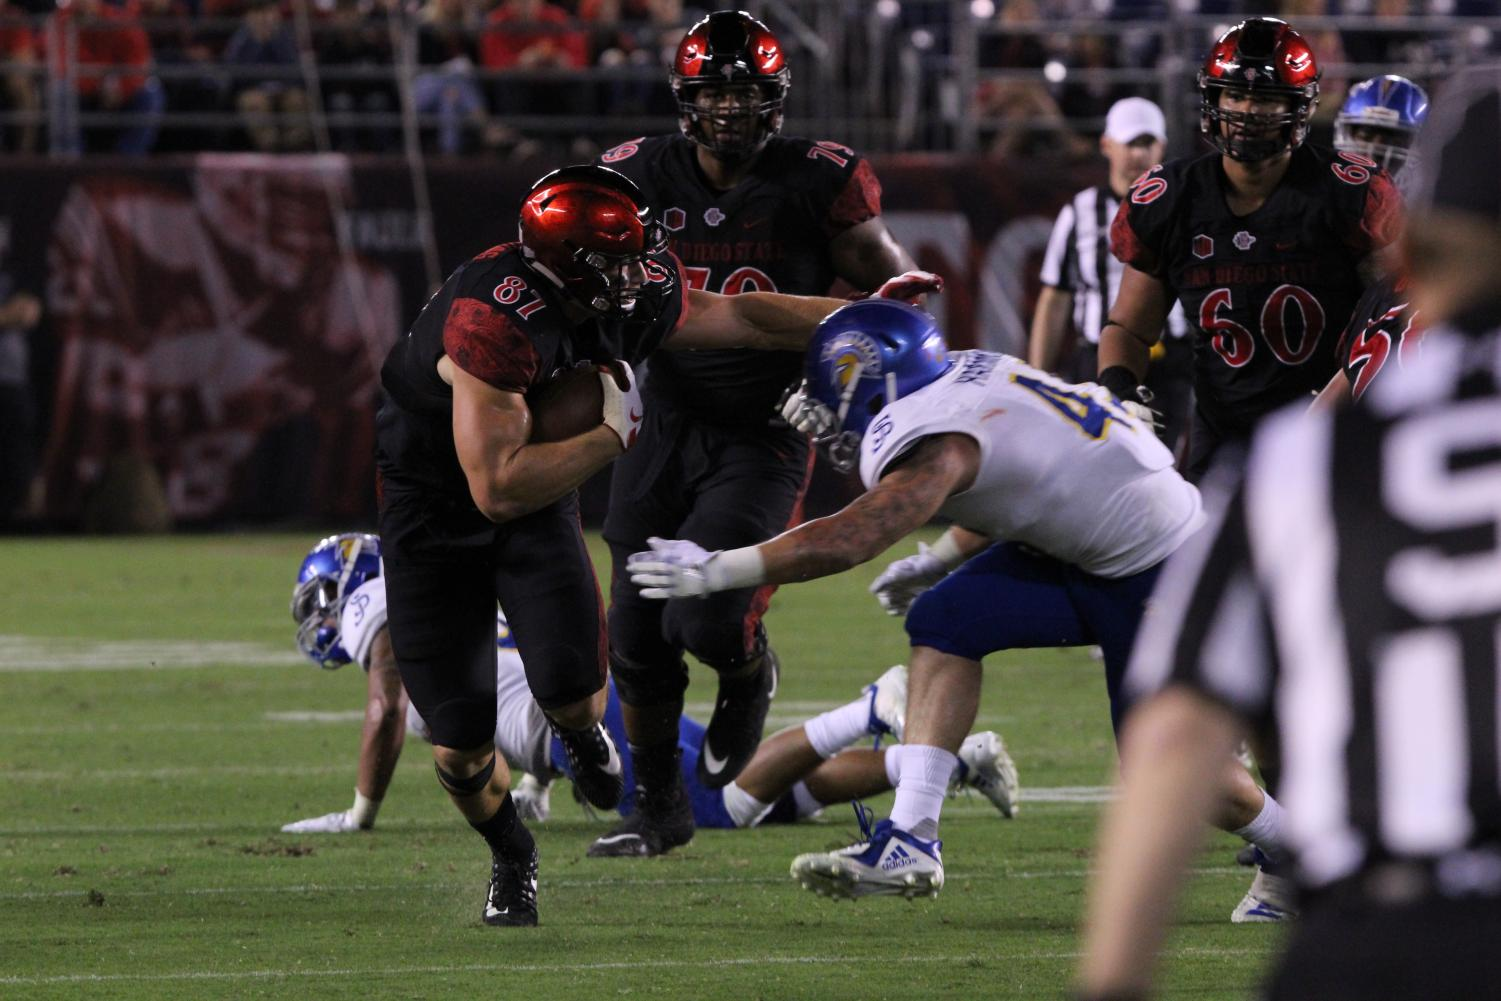 Junior tight end Kahale Warring stiff arms a defender against San Jose State on Oct. 20 at SDCCU Stadium.